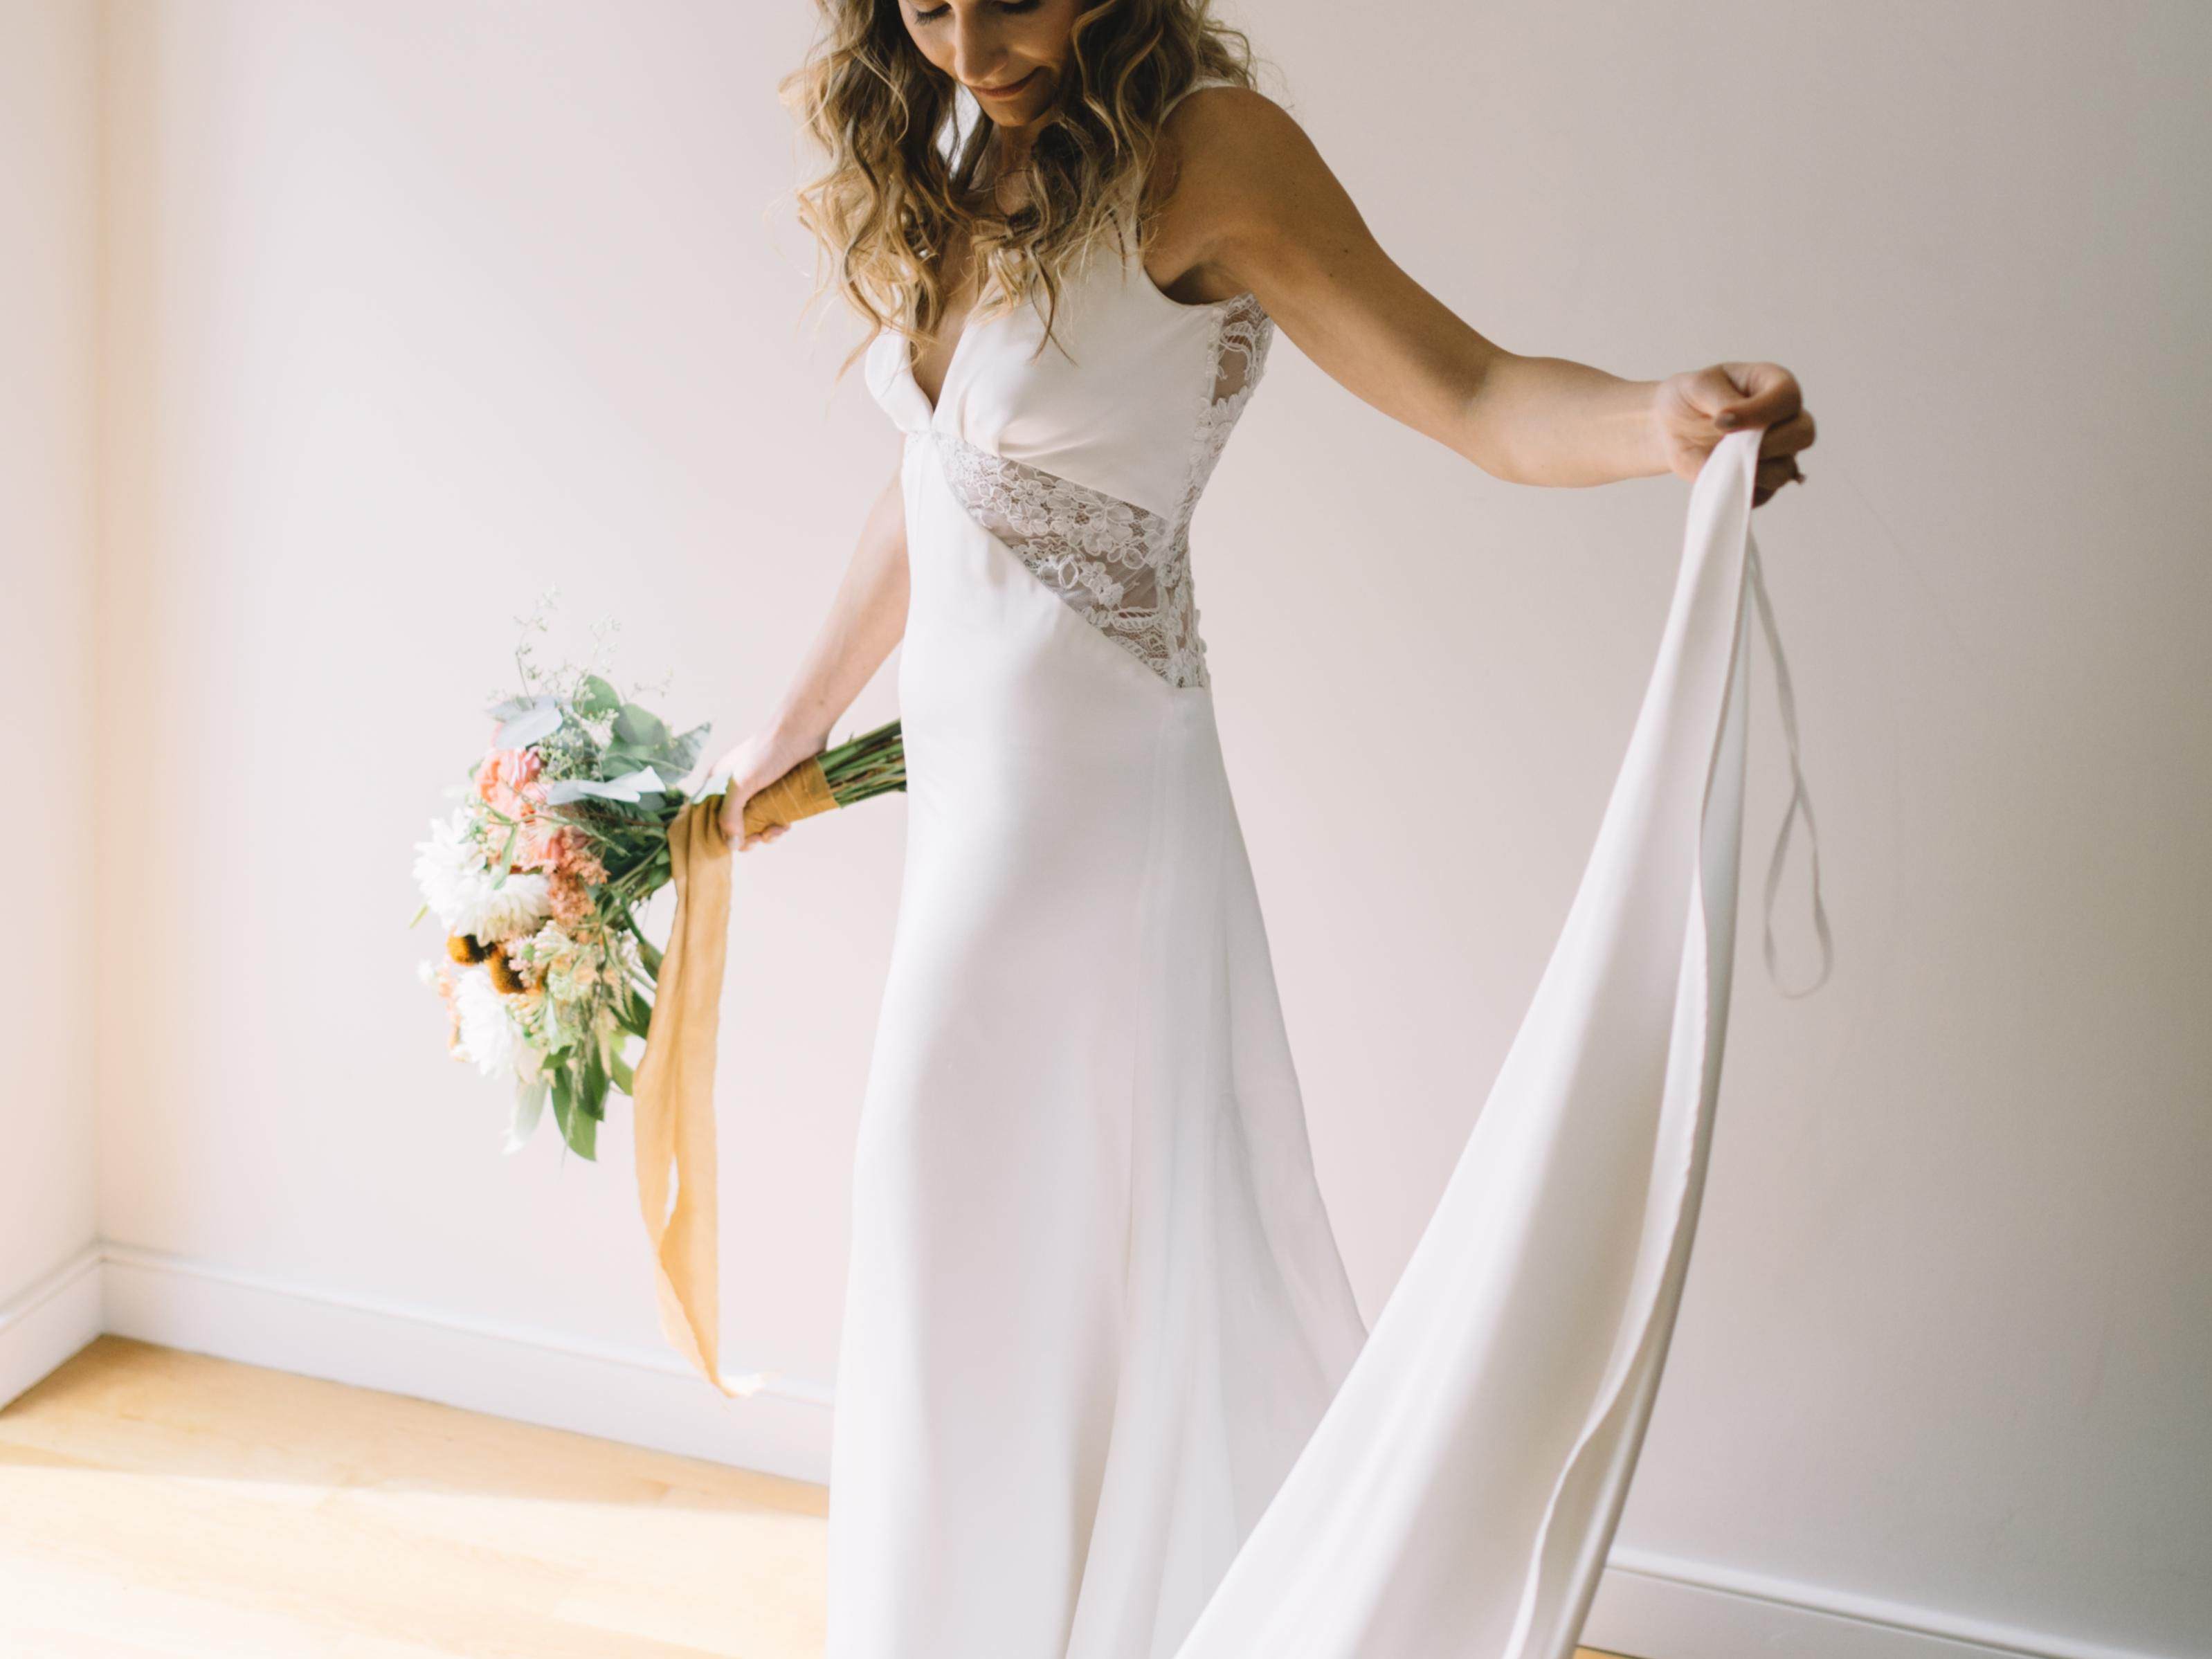 Bridal Dress Fabrics: A String To The Ceremonial Sanctity